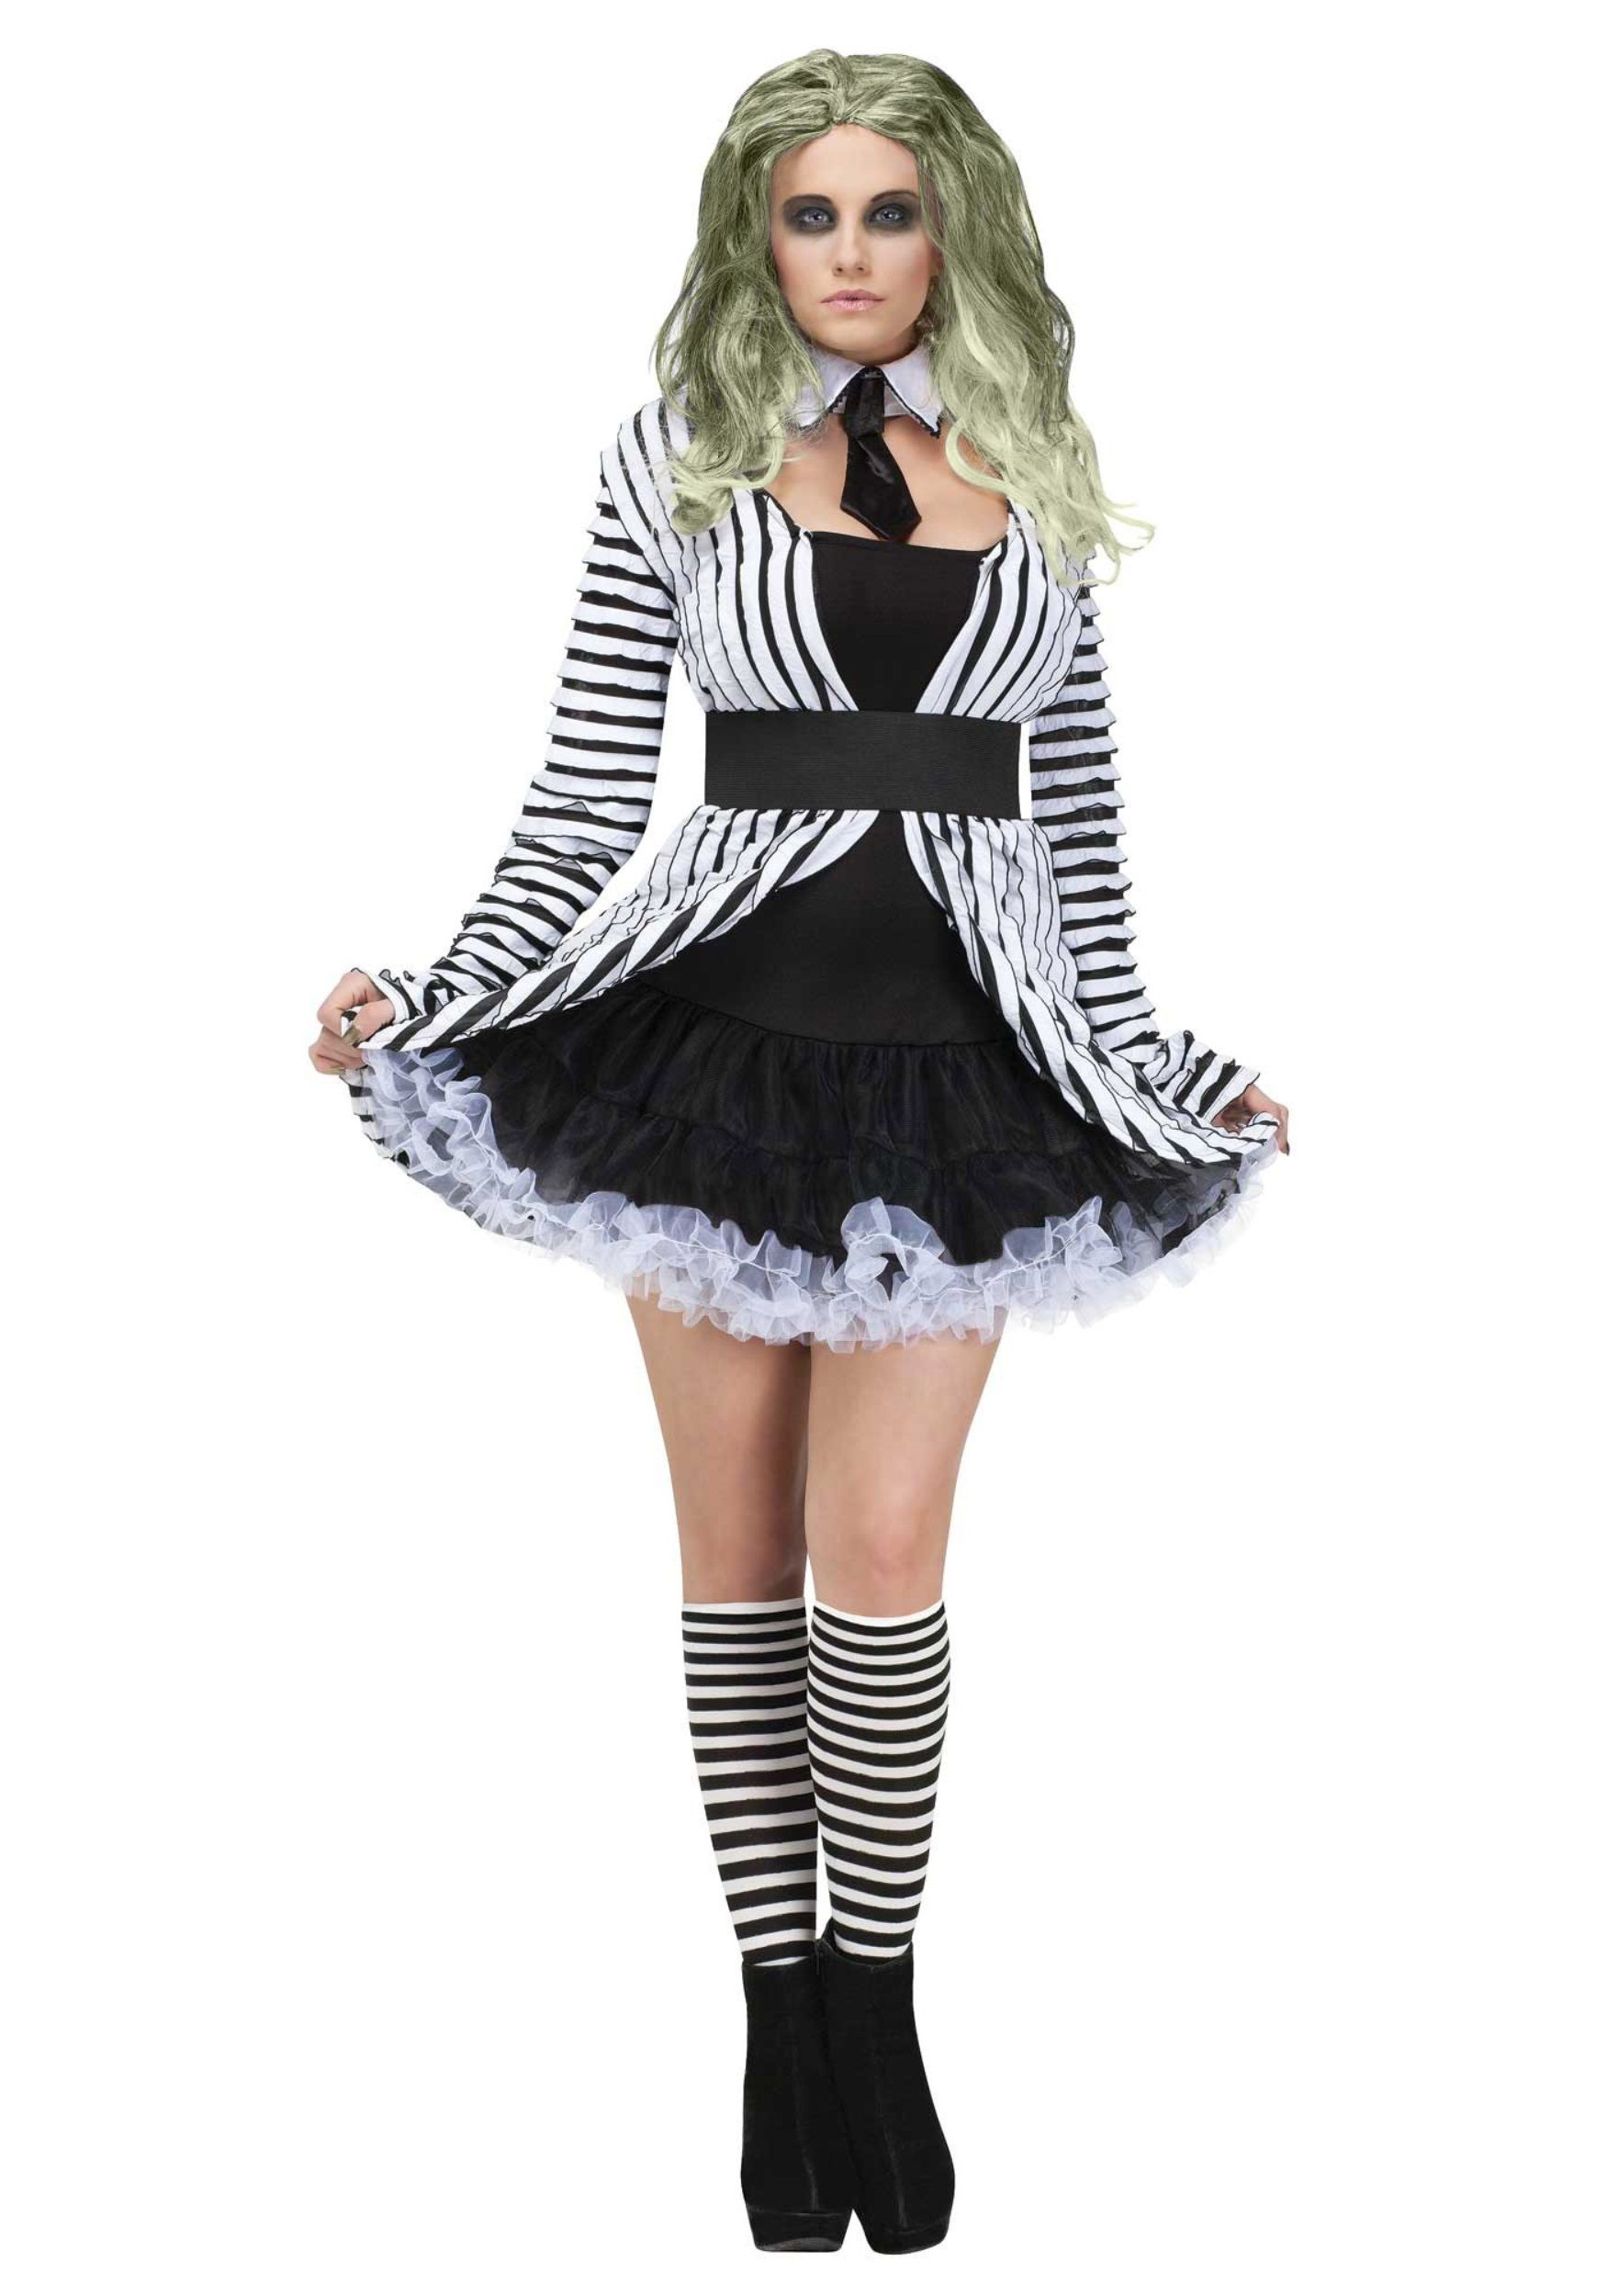 License Mrs Beetlejuice Costume Miss Beetlejuice Ladies Halloween Fancy Dress